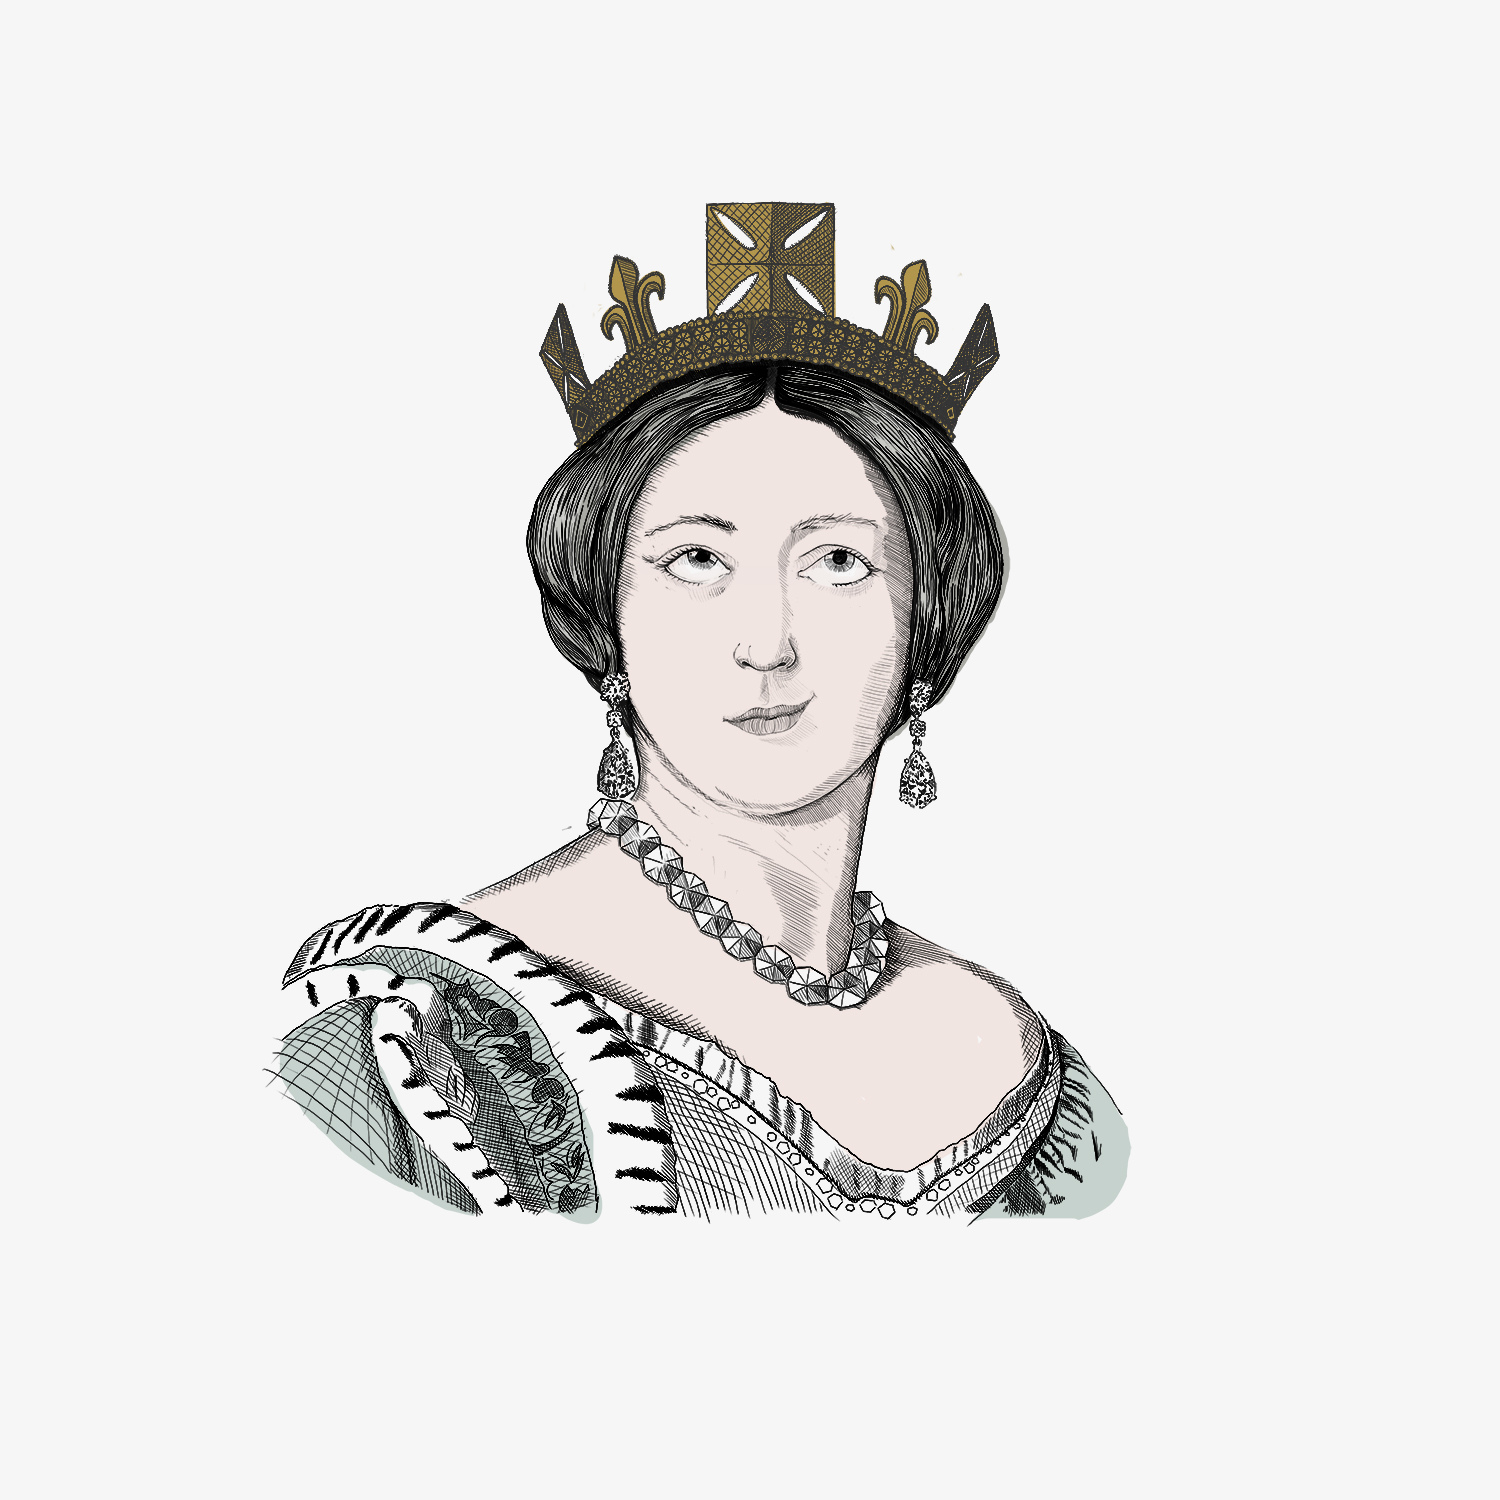 Hand drawn illustration of a young Queen Victoria